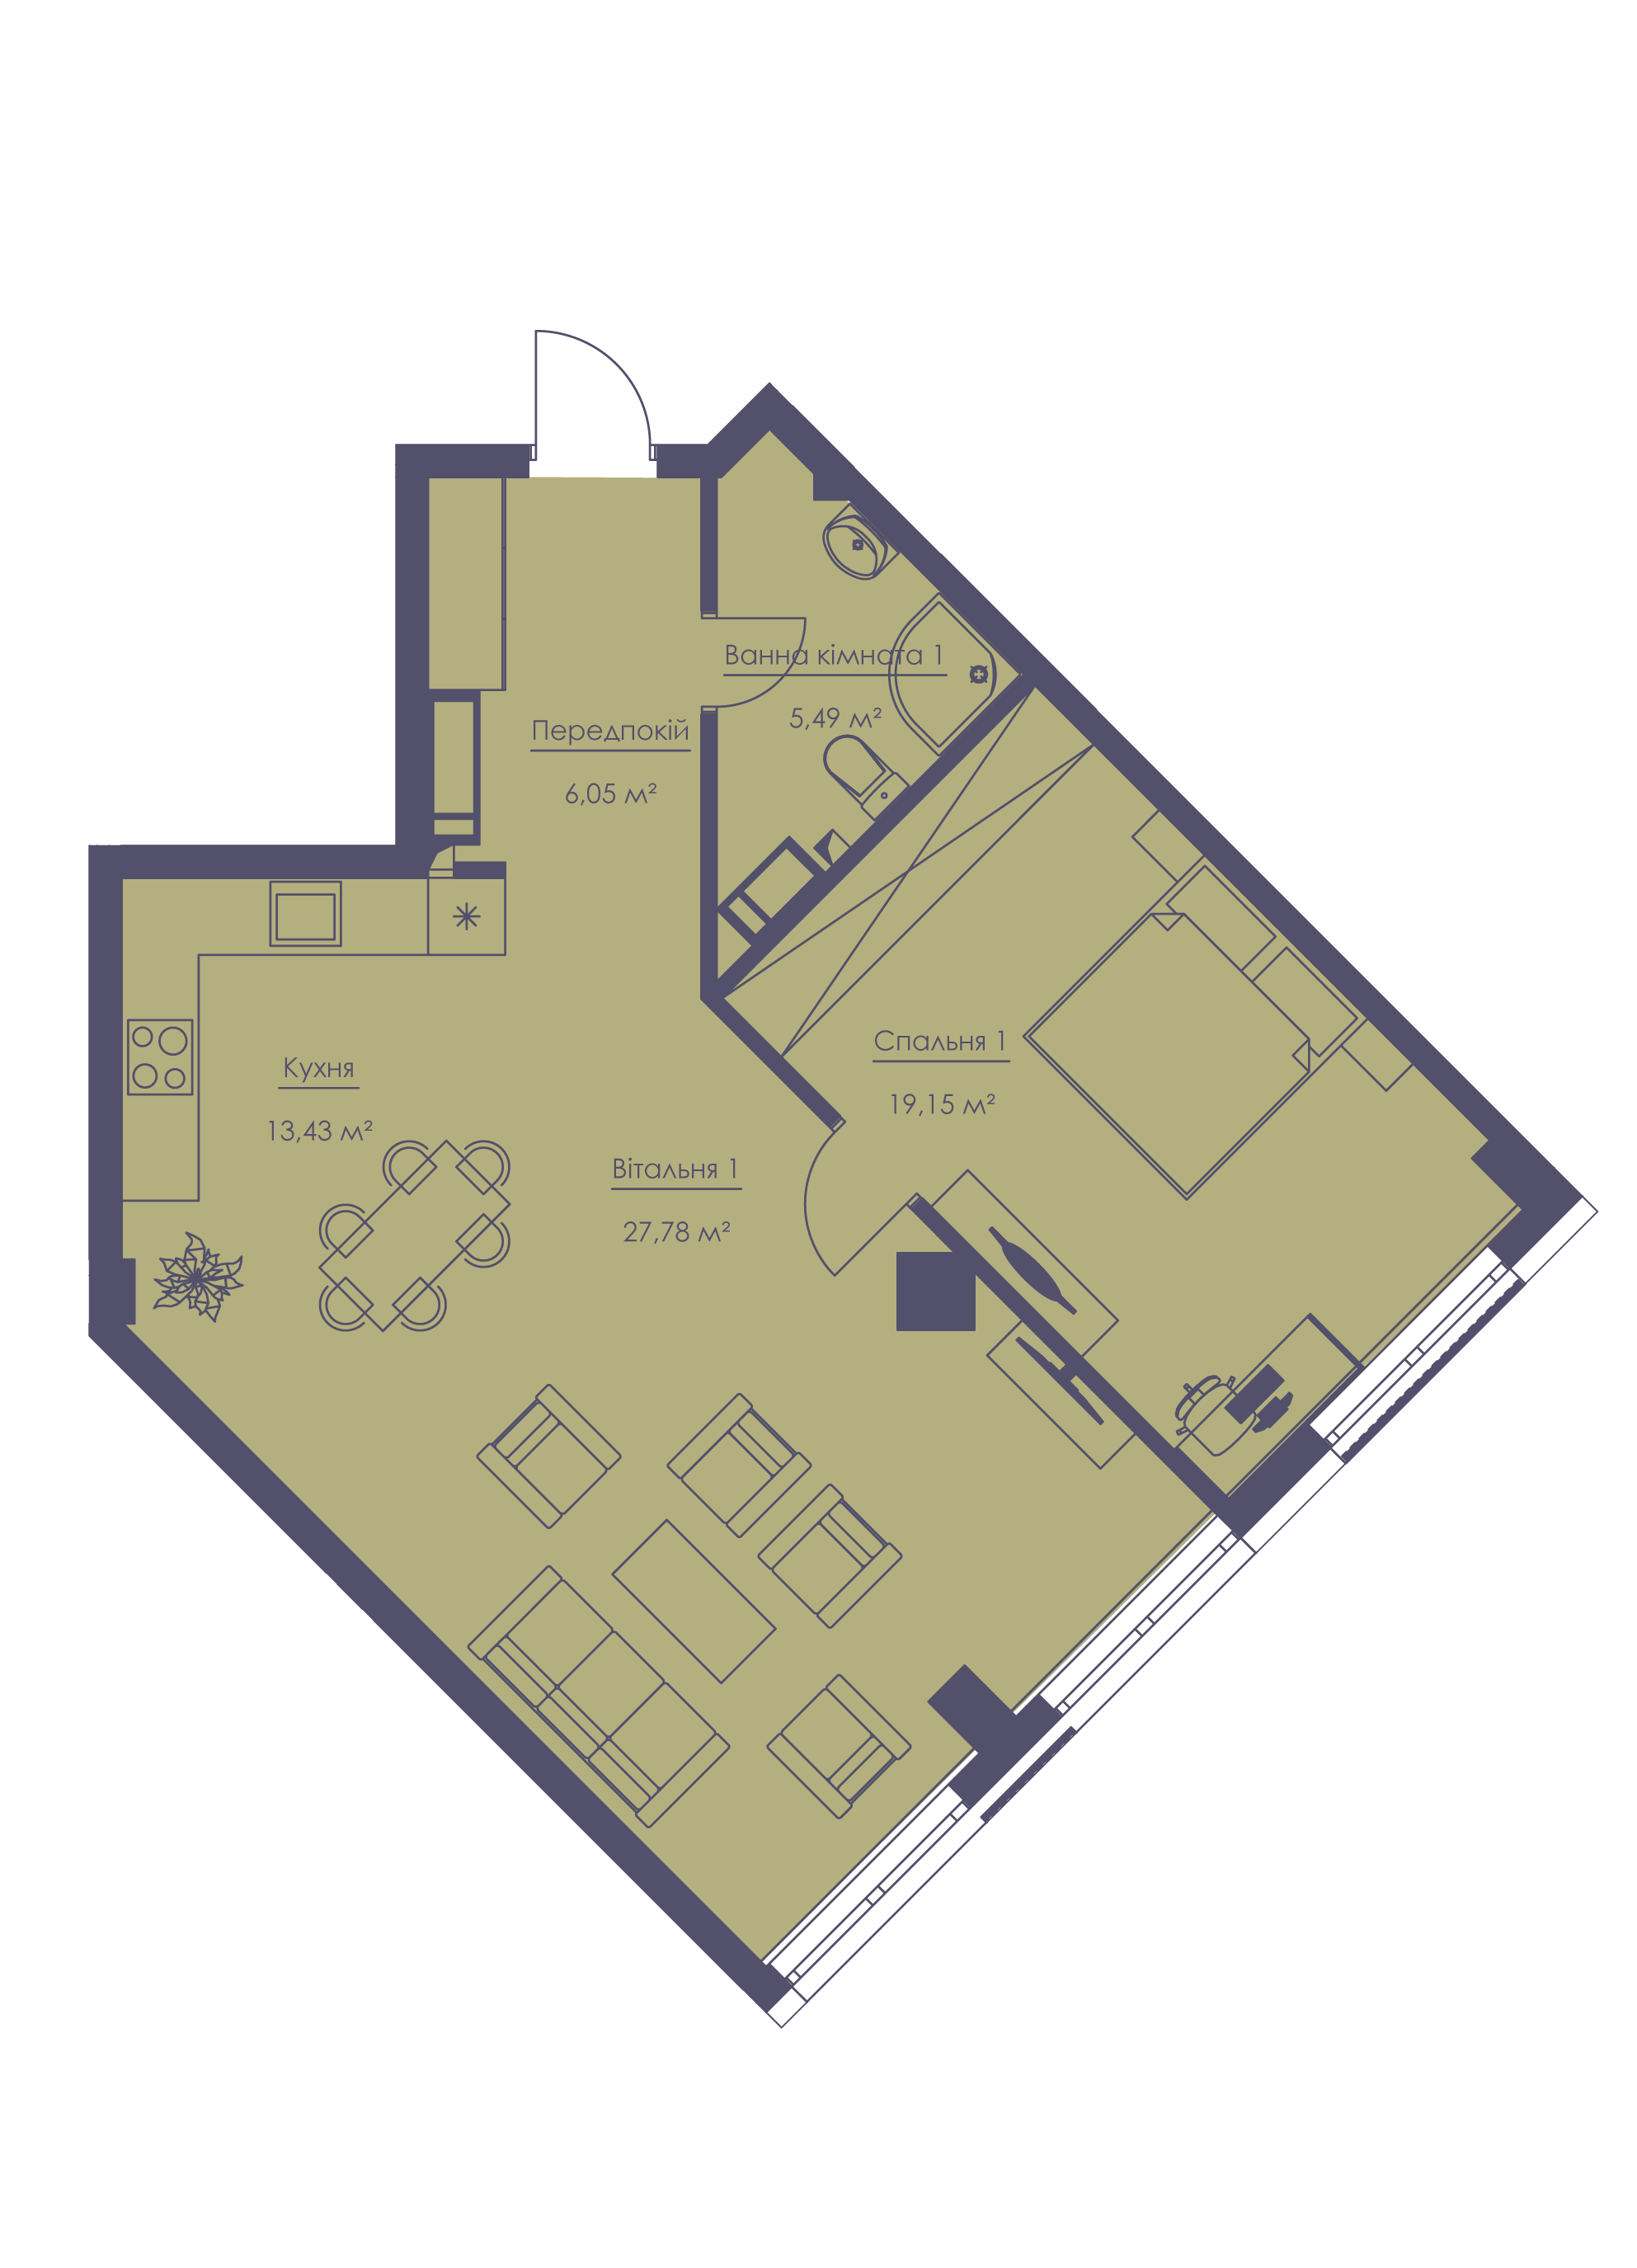 Apartment layout KV_80_2a_1_1_1-1